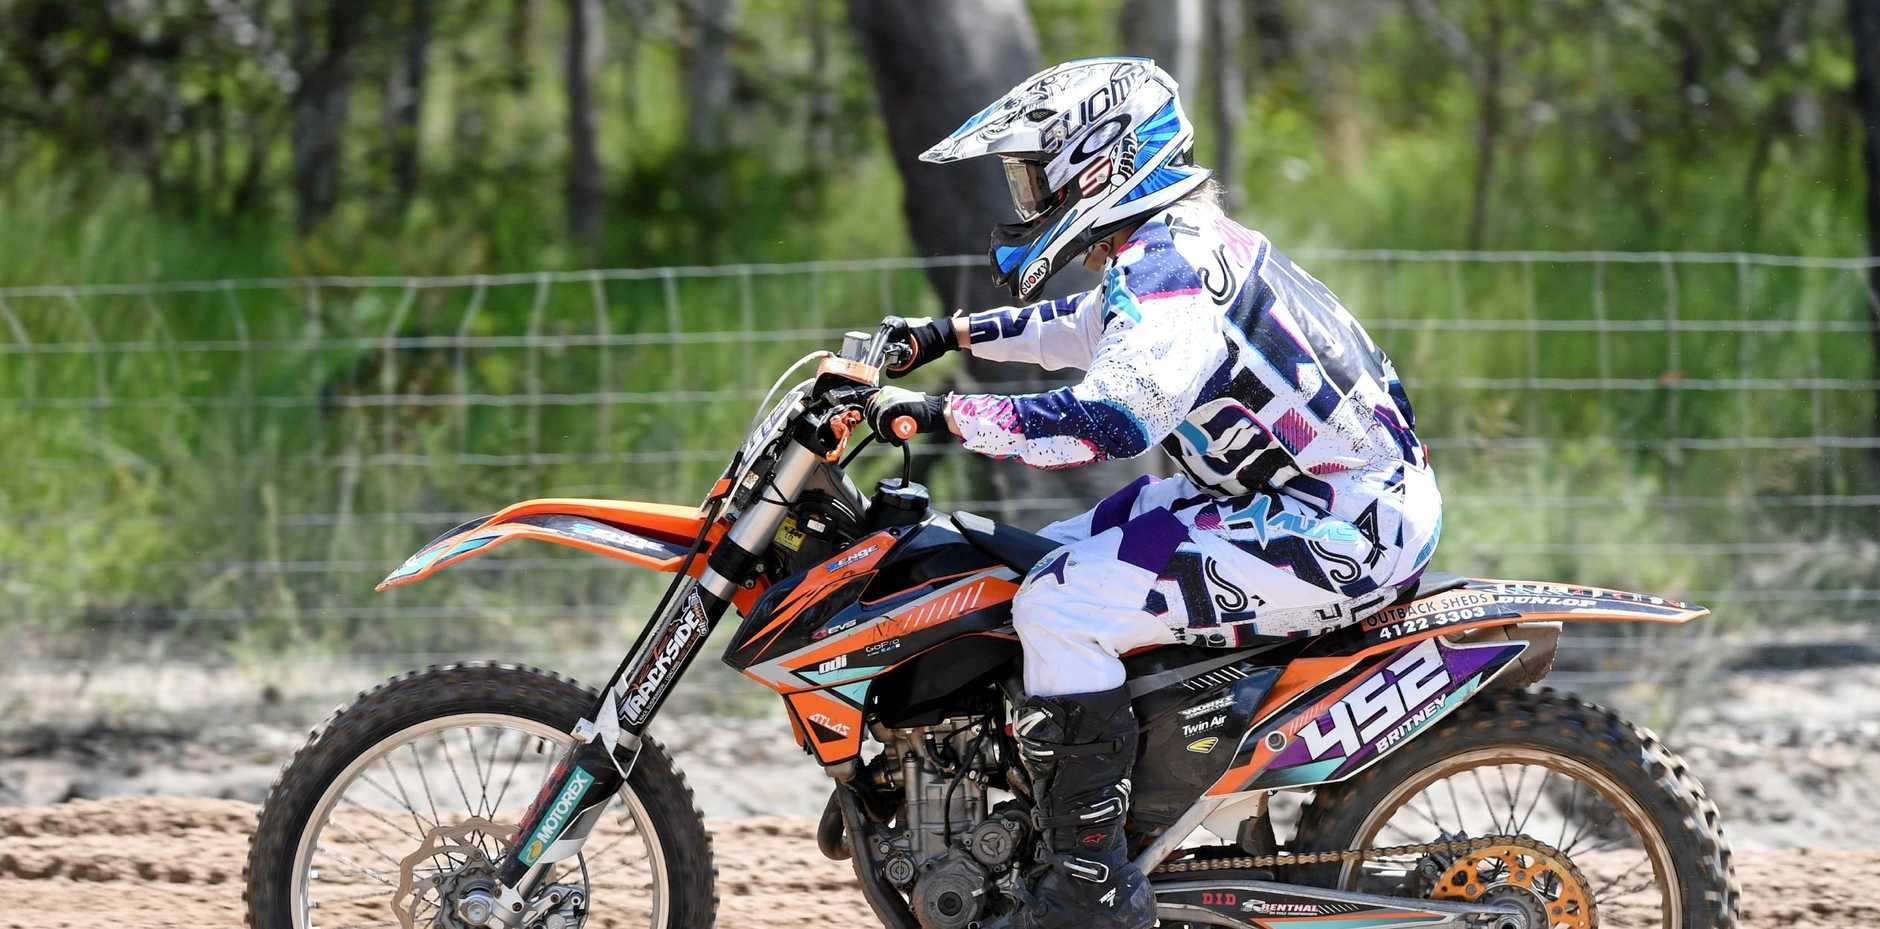 Airoh MX Series Sunshine State at Dundowran Park - Britney Boyce in the Women's race.